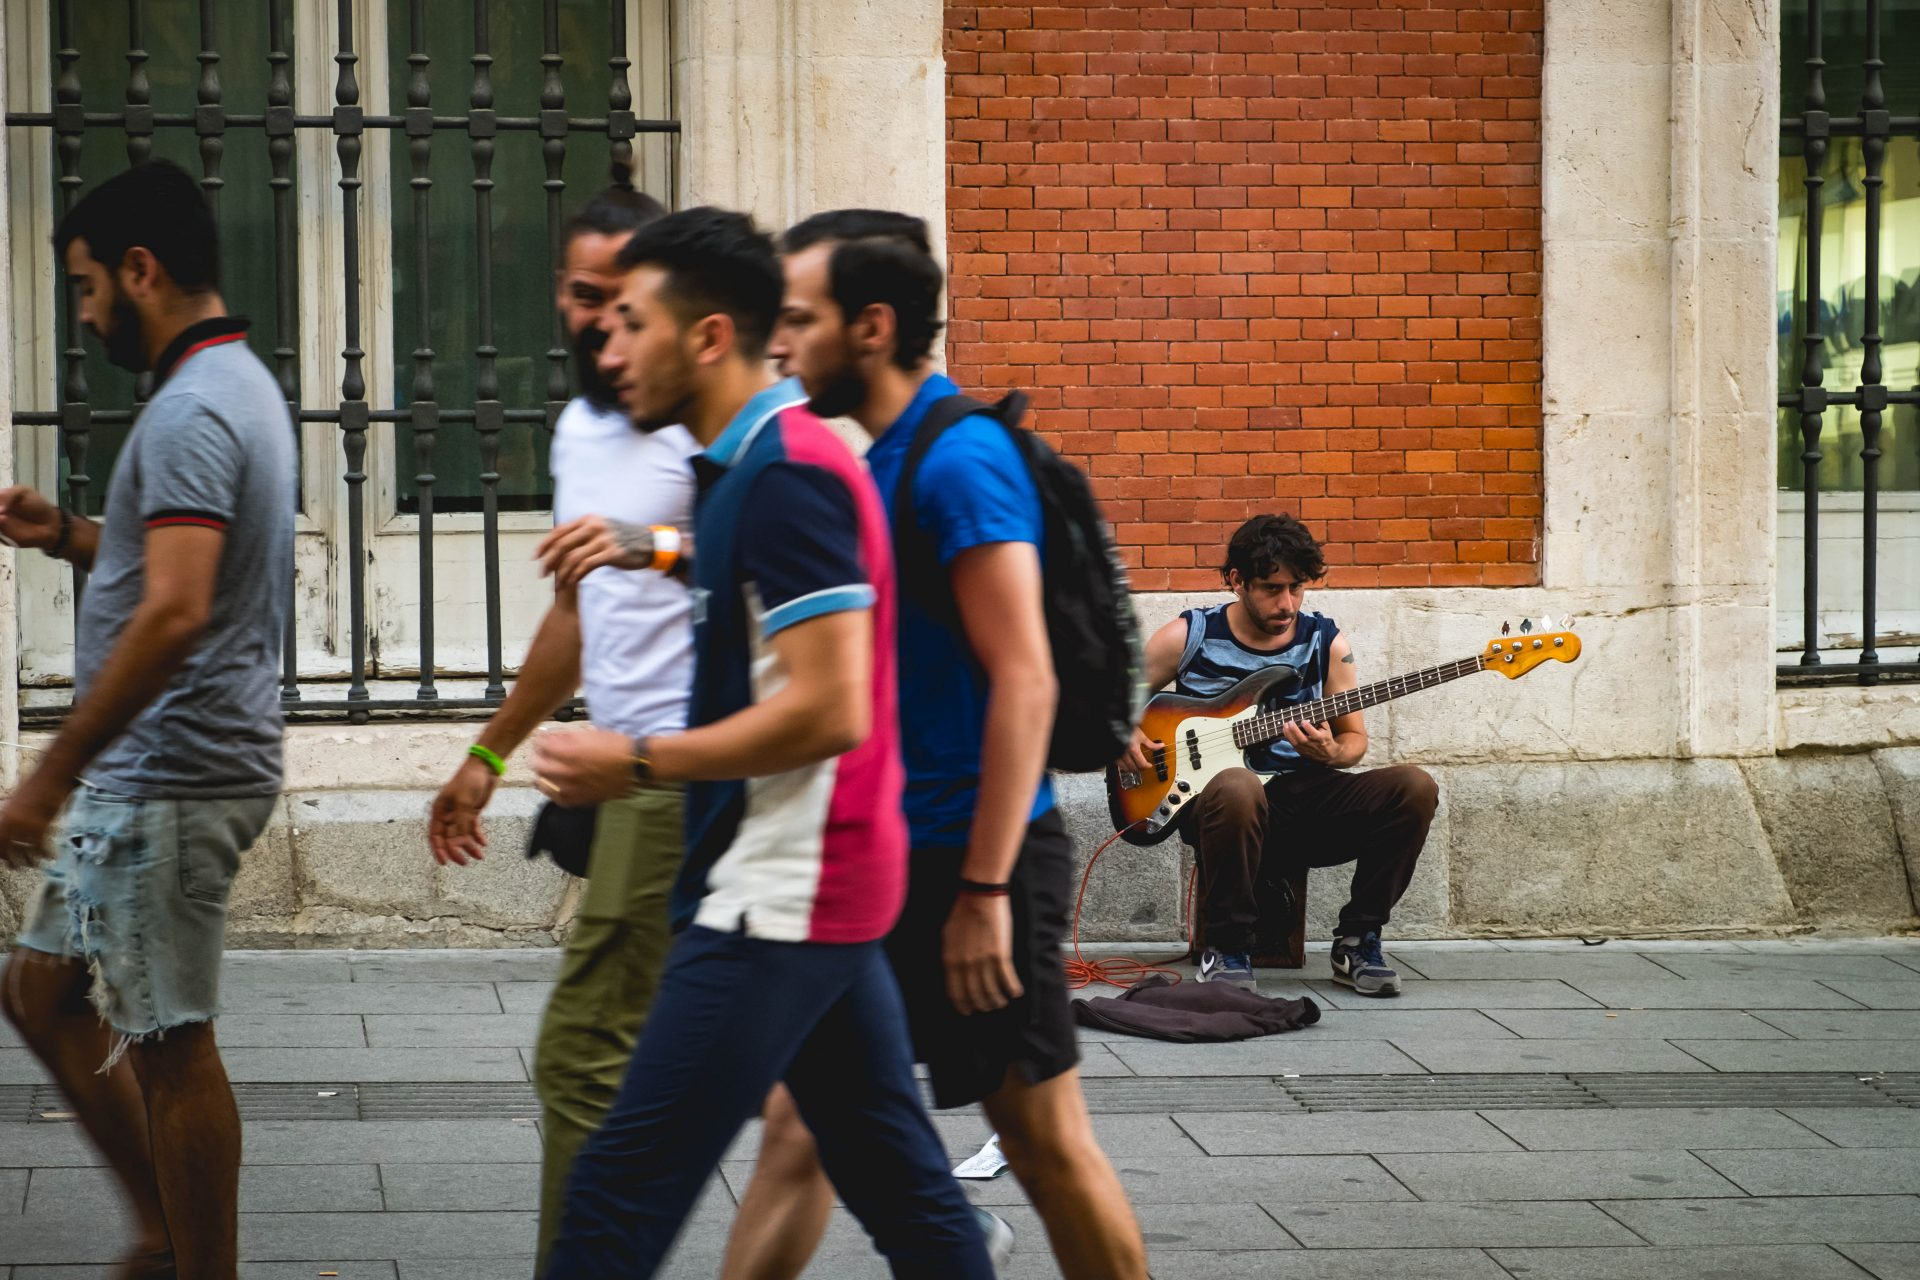 Group of people walking in the streets of Madrid with a guitar player in the background photo by Jo Kassis